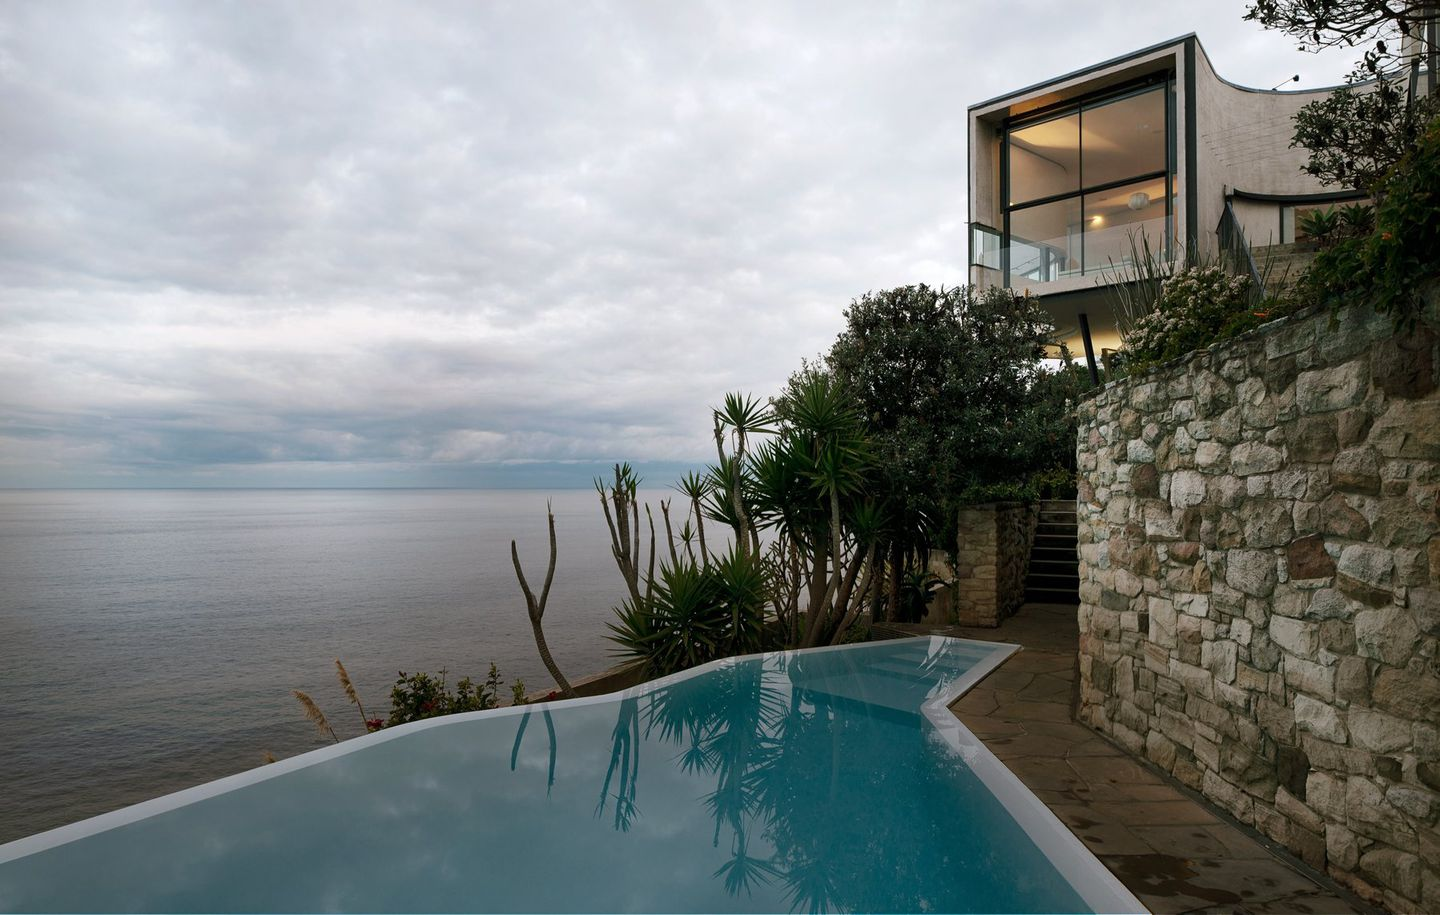 View of infinity pool above a cliff looking out to the ocean at cliff house at Dover Heights Sydney designed by Durbach Block Jaggers Architects